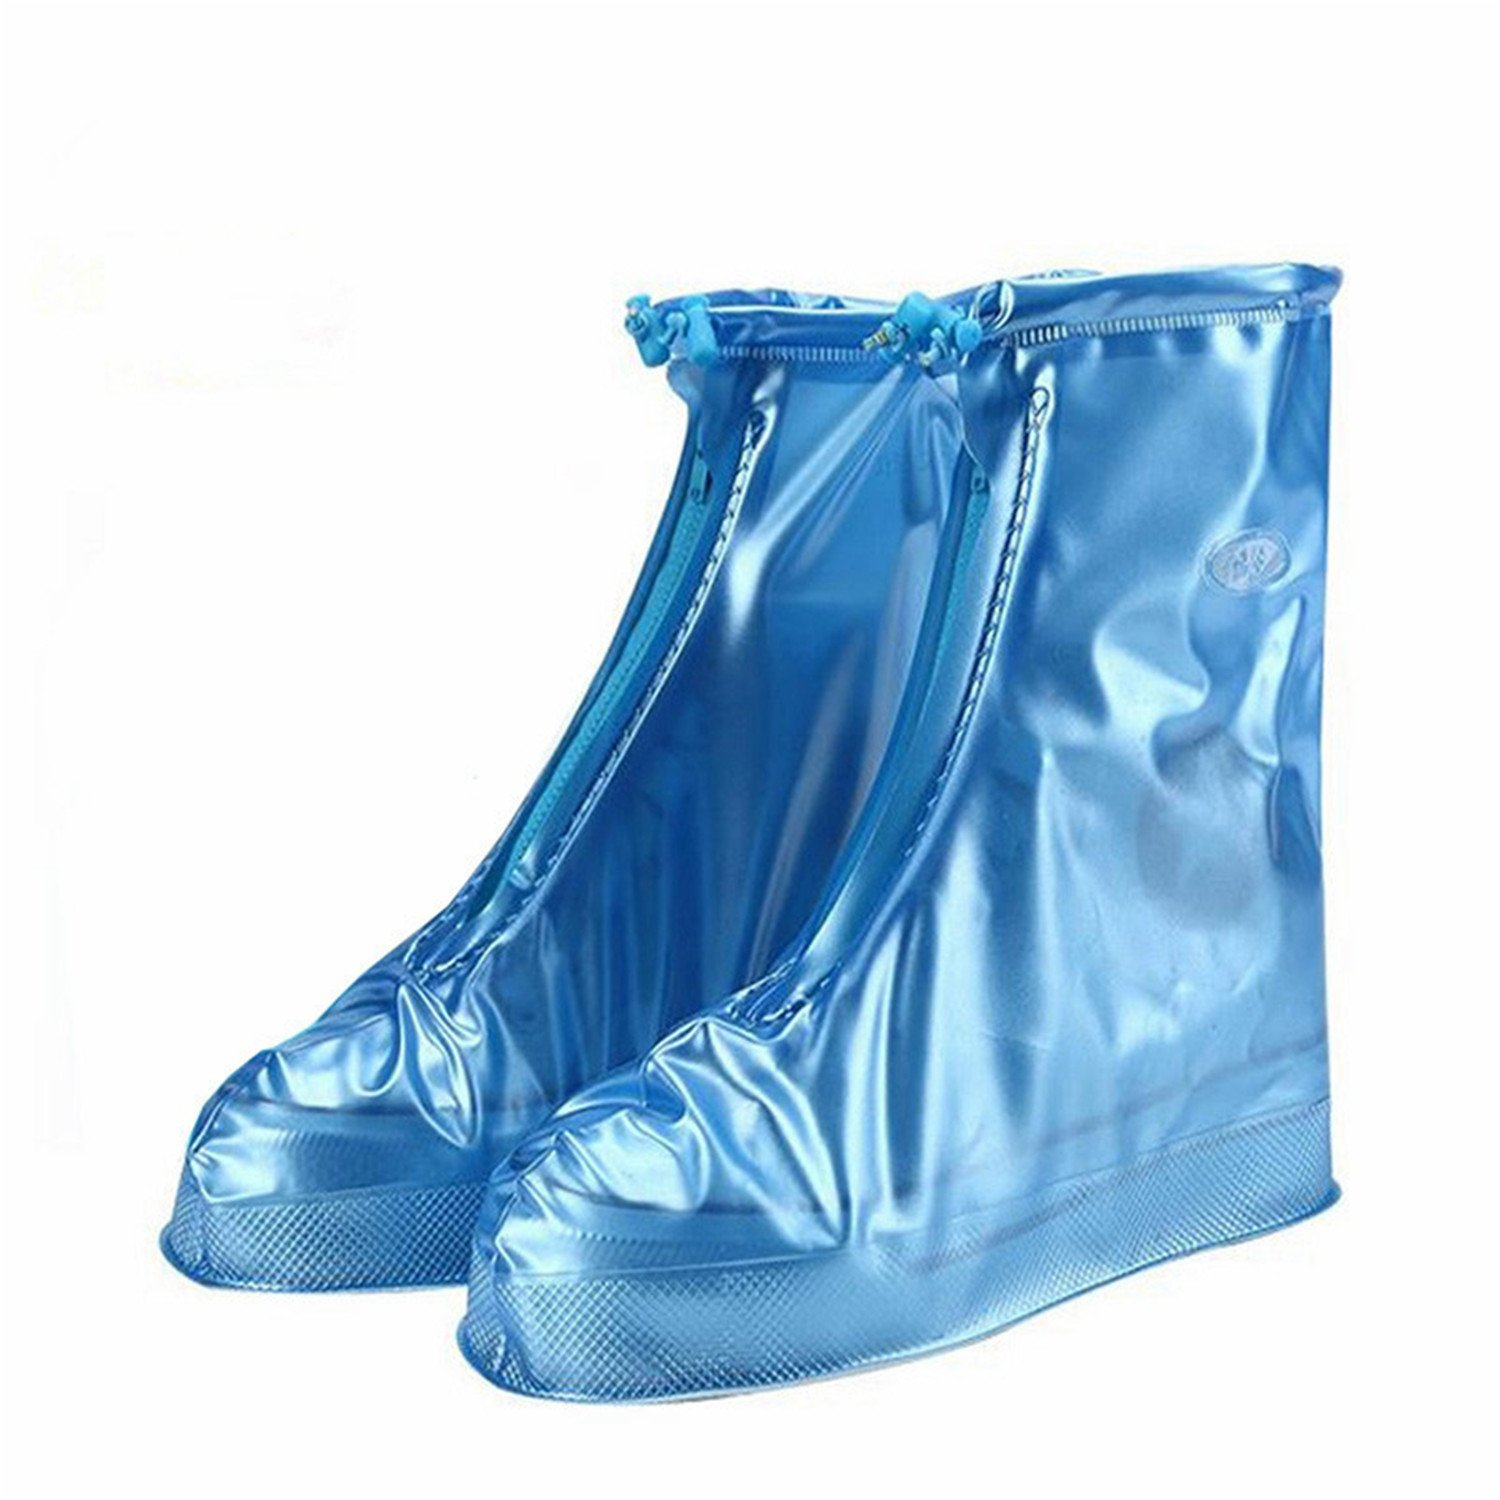 Amazon.com | Luise Hoger Waterproof Overshoes Shoe Covers Shoe Protector Men&WomenSΧldren Rain Cover For Shoes Shoes Accessories | Rain Footwear